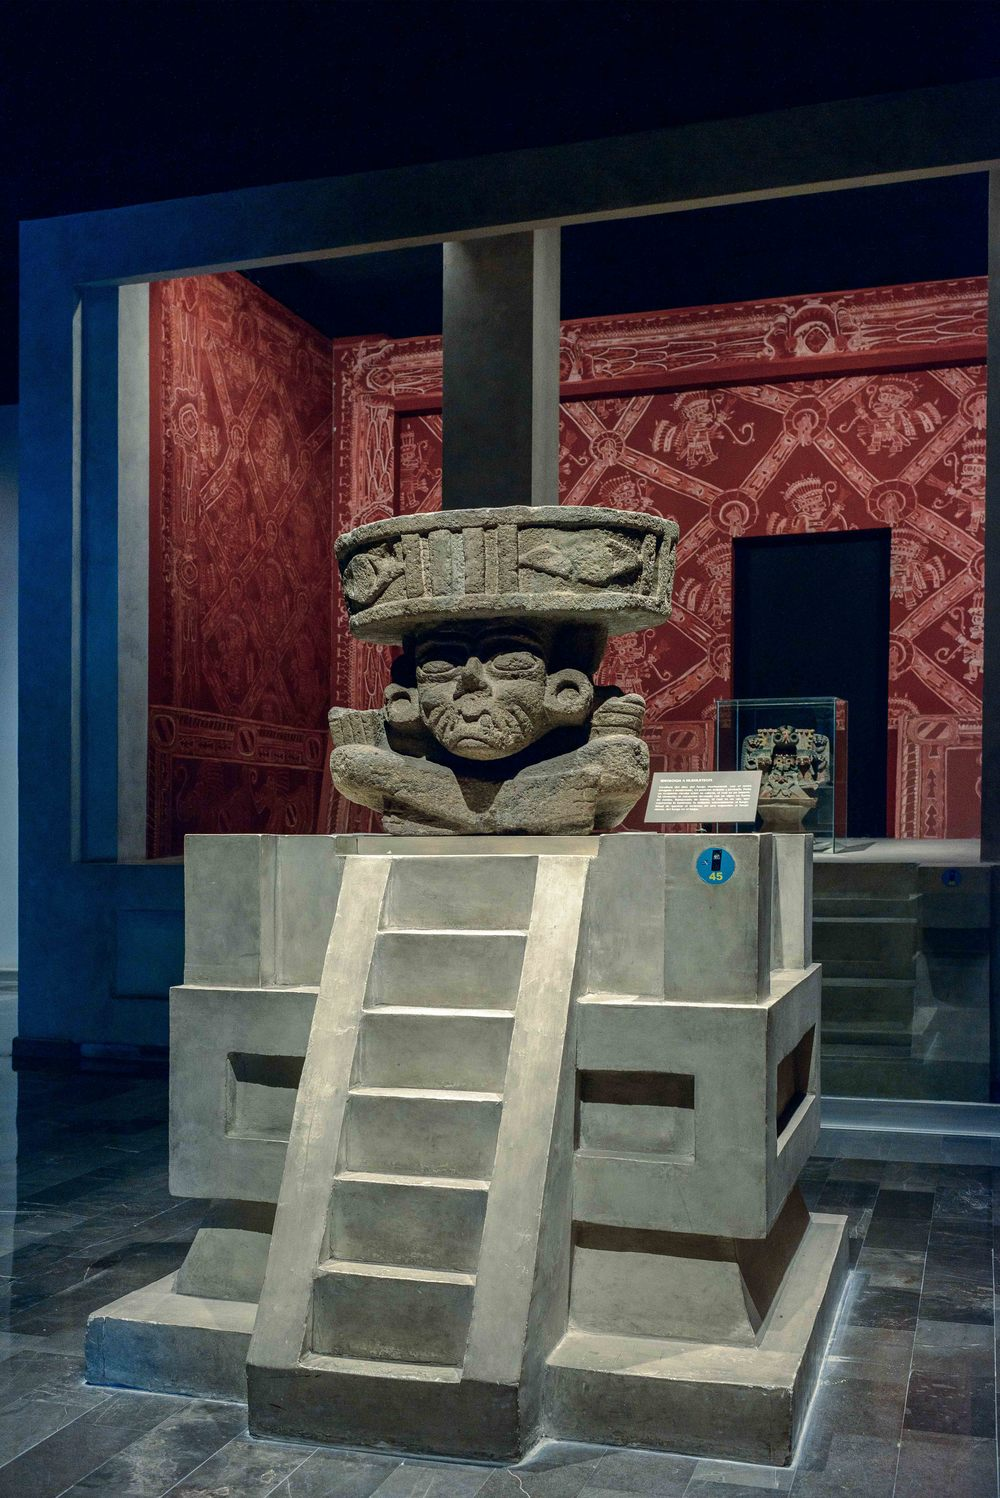 The sculpture of the fire god Huehueteotl, with wrinkled face and toothless, hunchbacked in a sitting position.